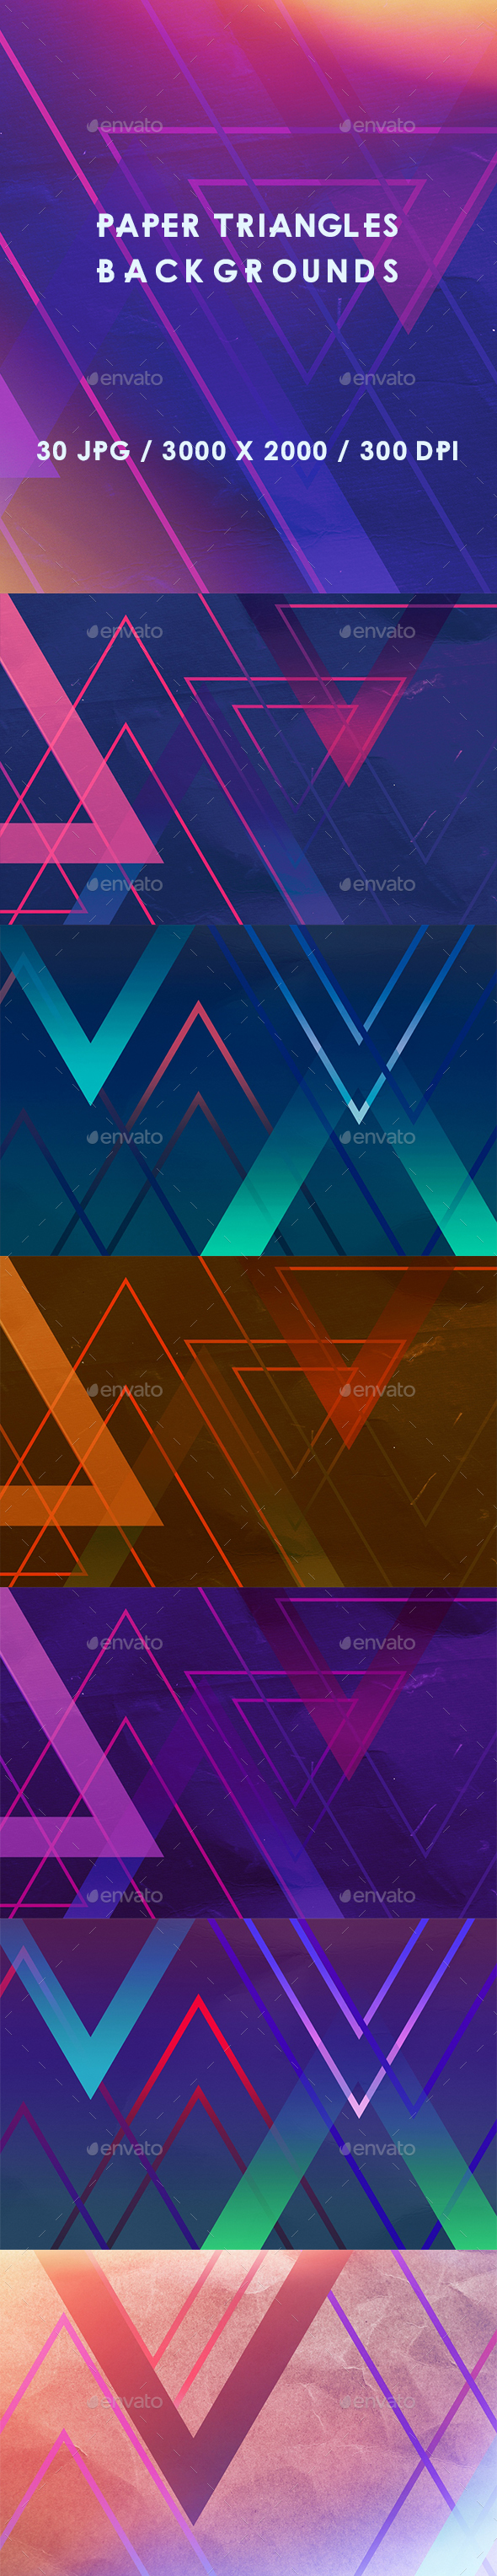 30 Paper Triangles Backgrounds - Abstract Backgrounds